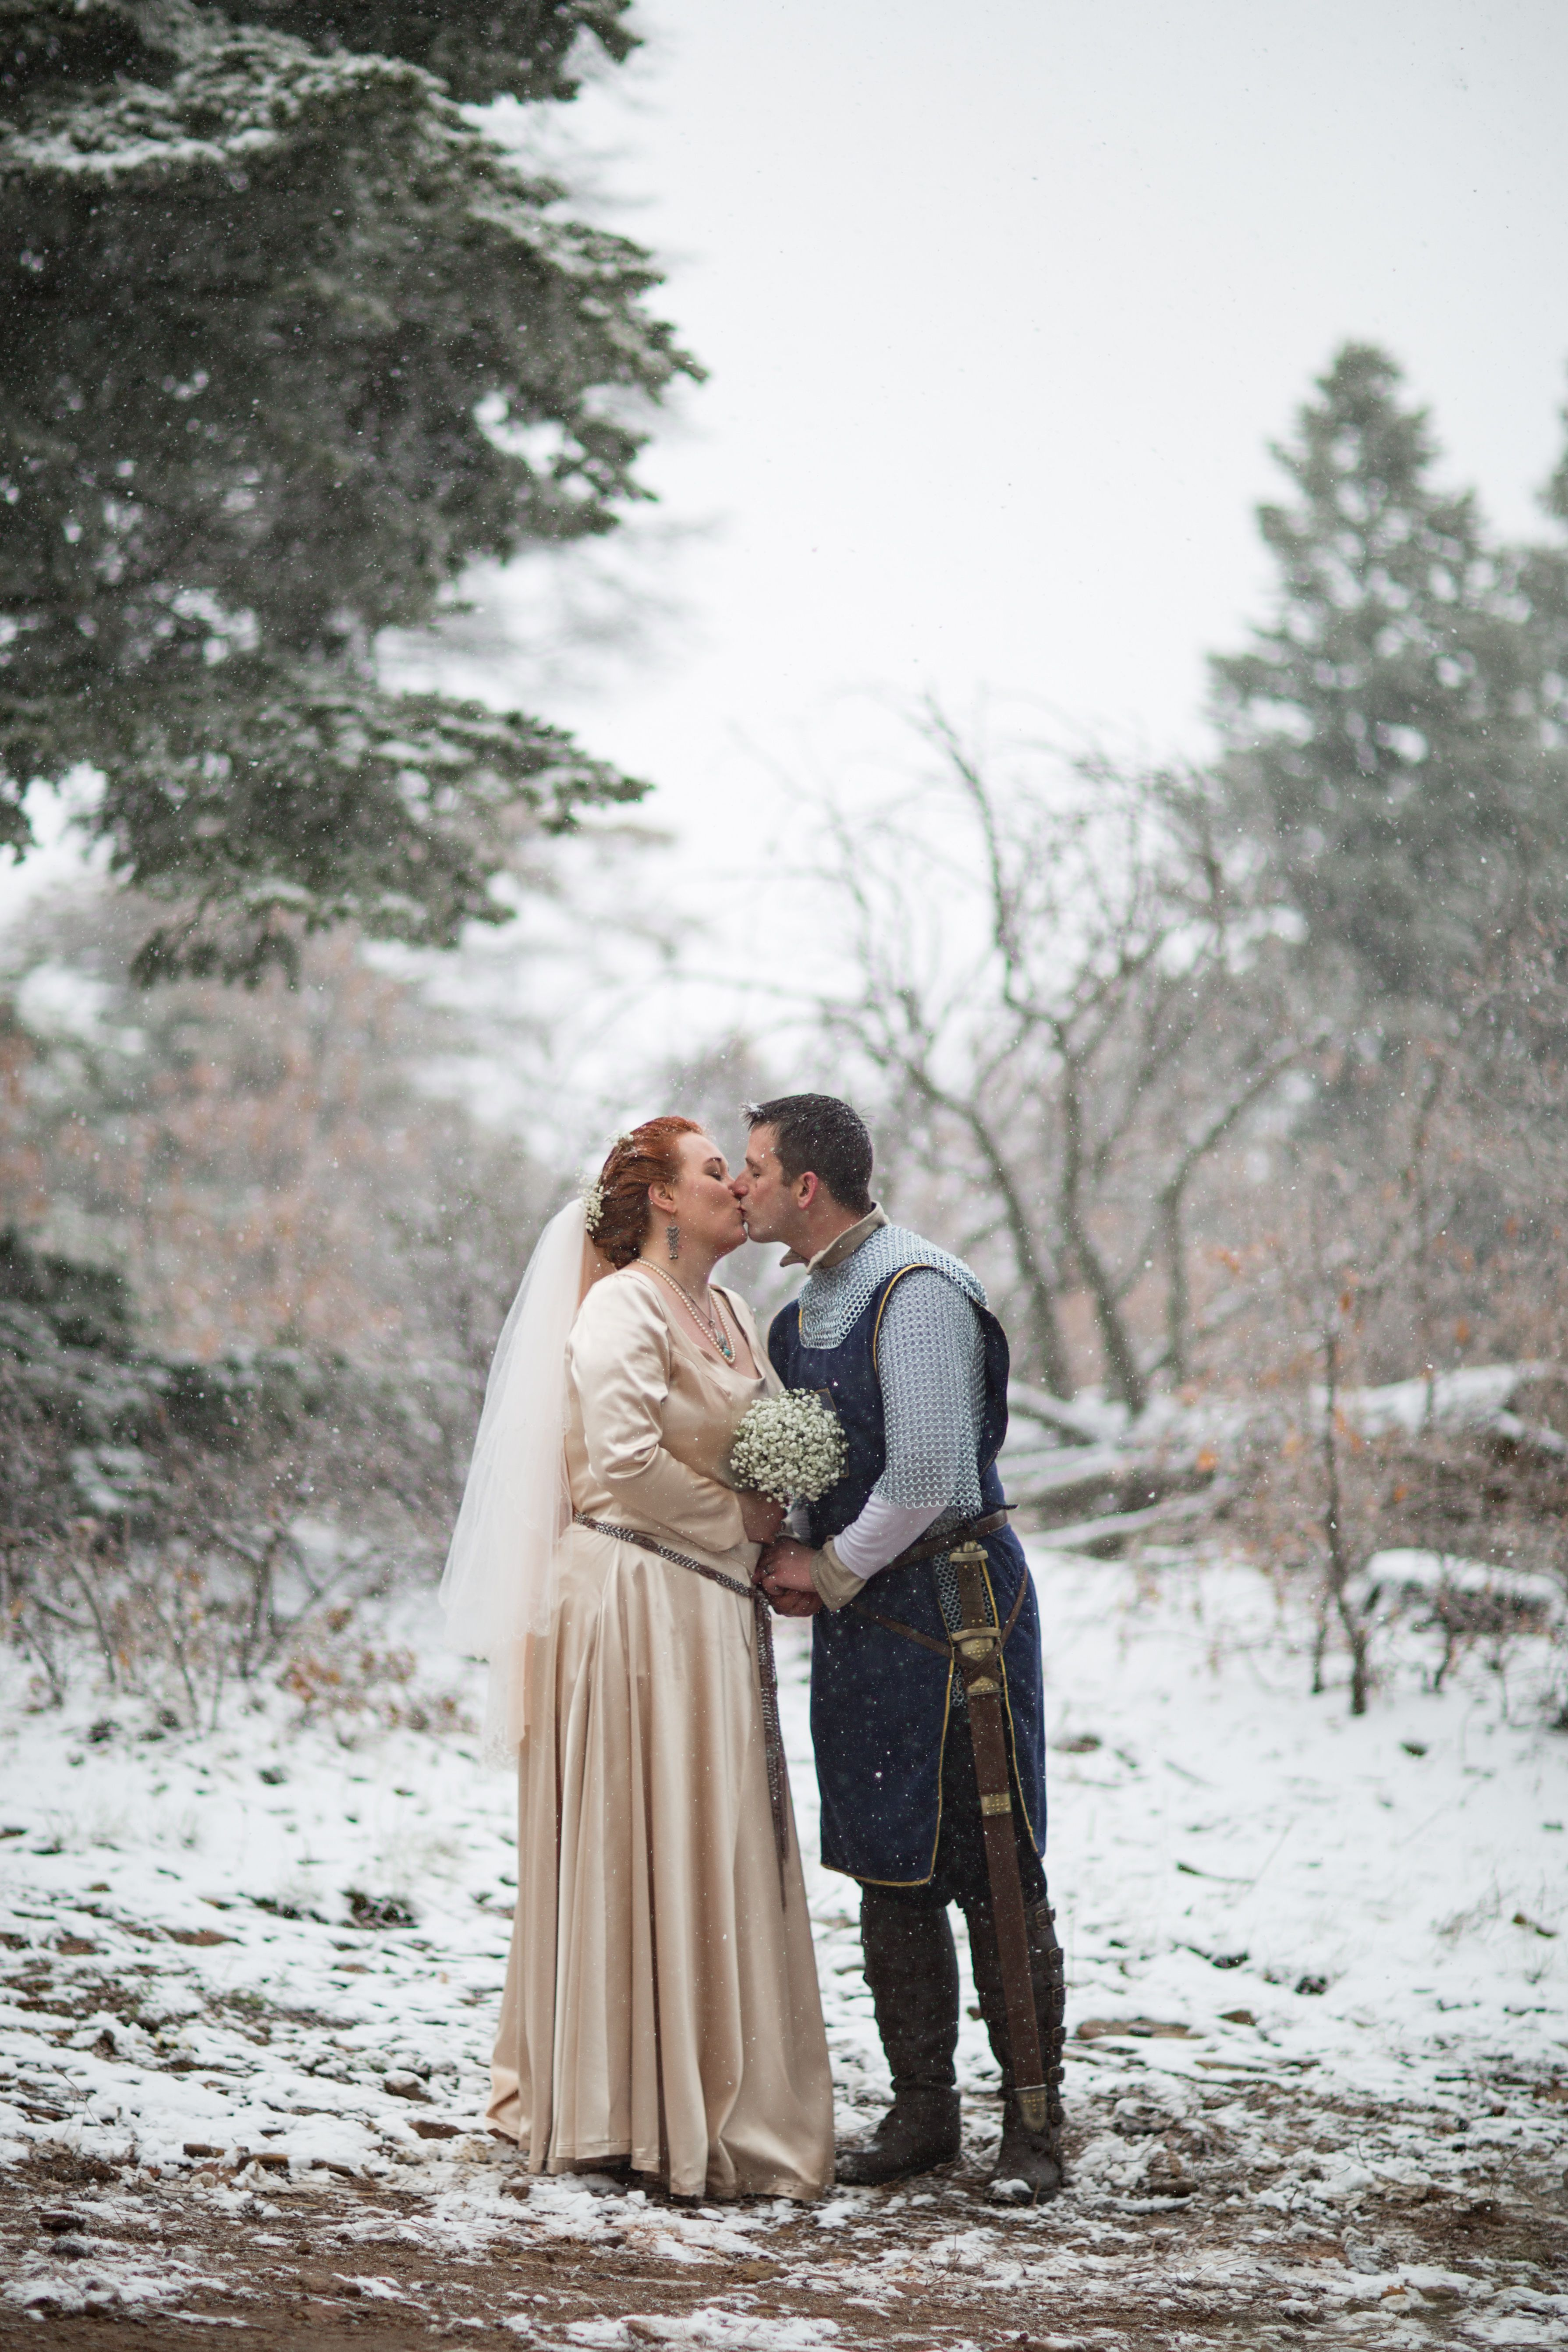 A Princess Bride themed wedding at Sandia Peak. The snowstorm in May ...